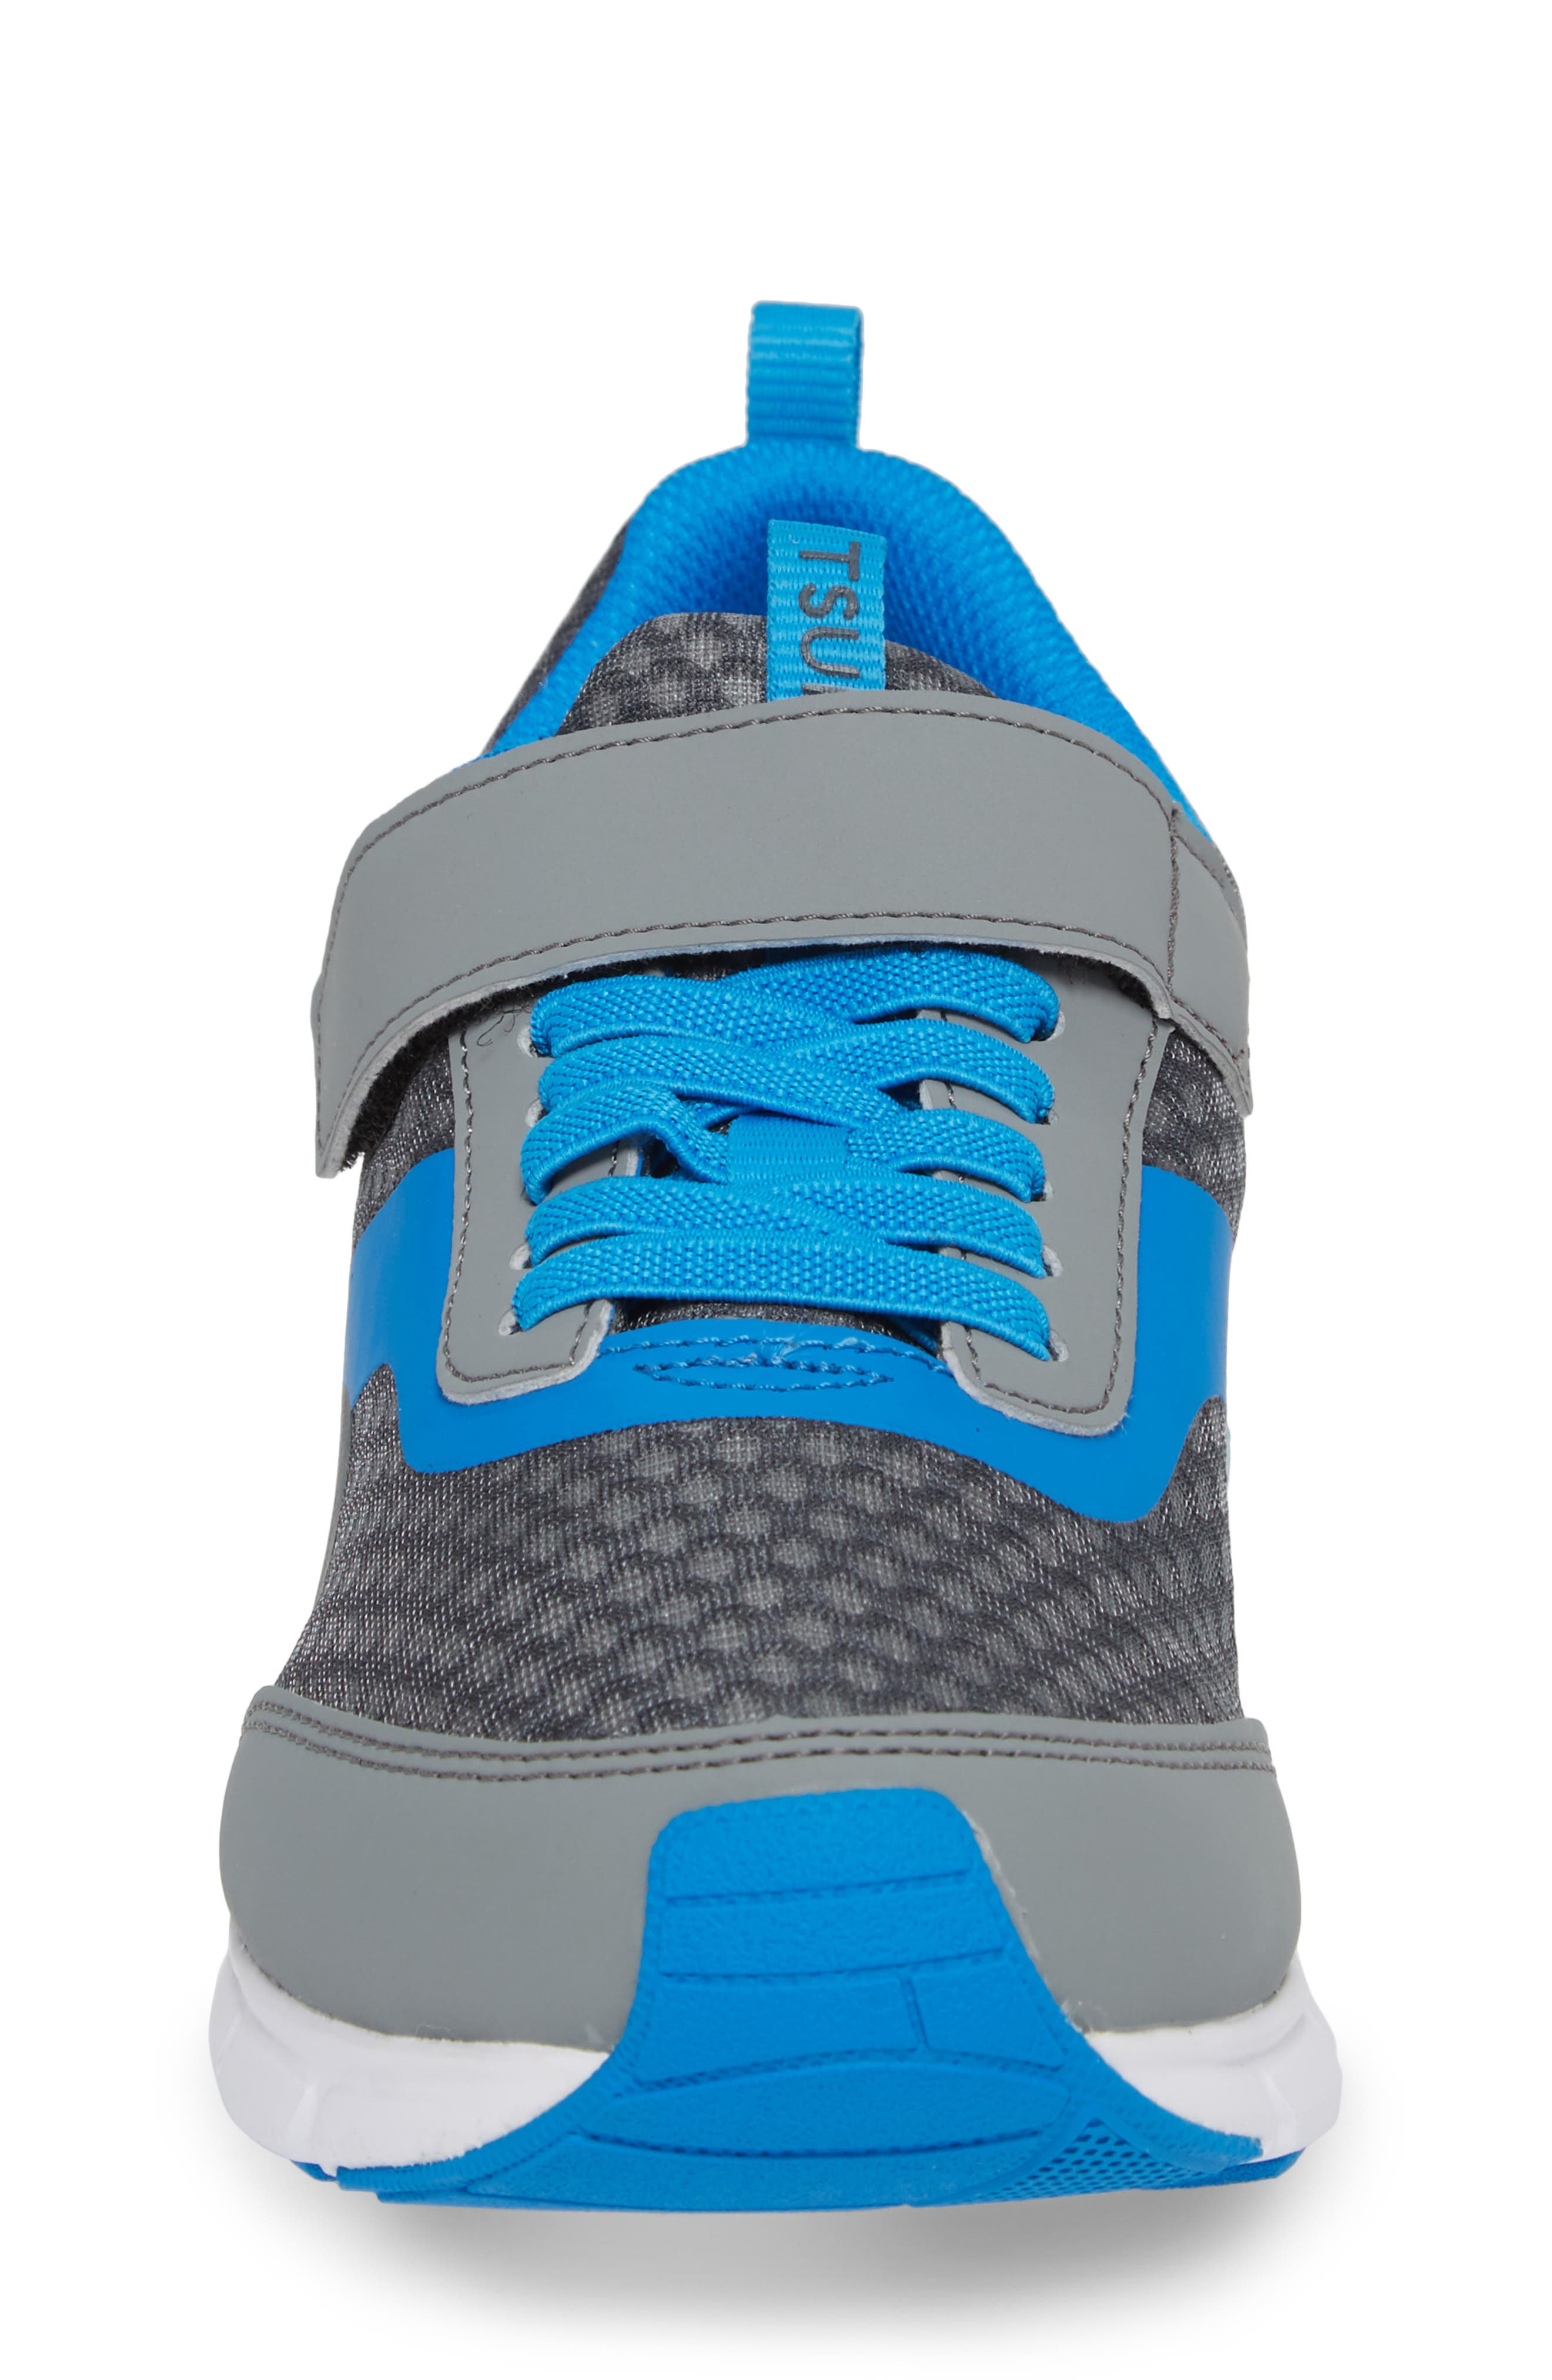 Sonic Washable Sneaker,                             Alternate thumbnail 4, color,                             GRAY/ ROYAL